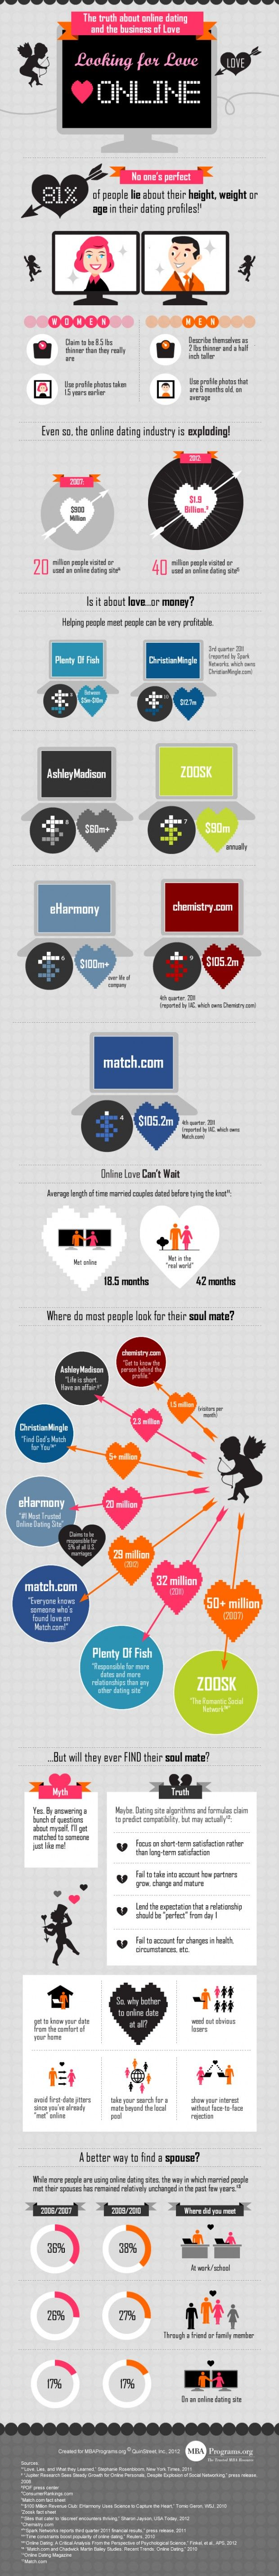 Buscando Amor On-Line? [infographic]